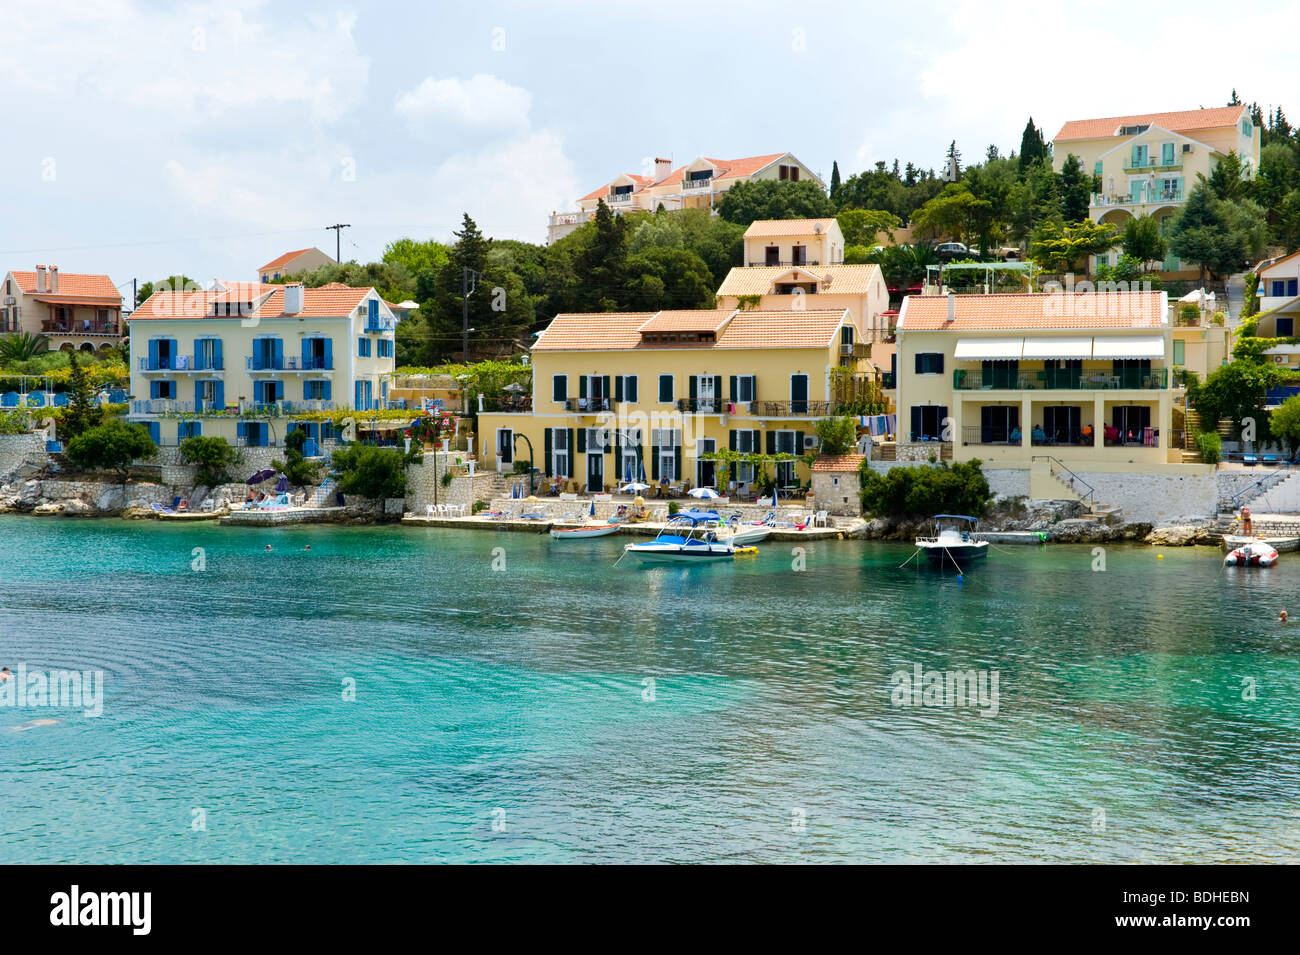 Holiday apartments overlooking the harbour in Fiskardo on the Greek Mediterranean island of Kefalonia Greece GR Stock Photo